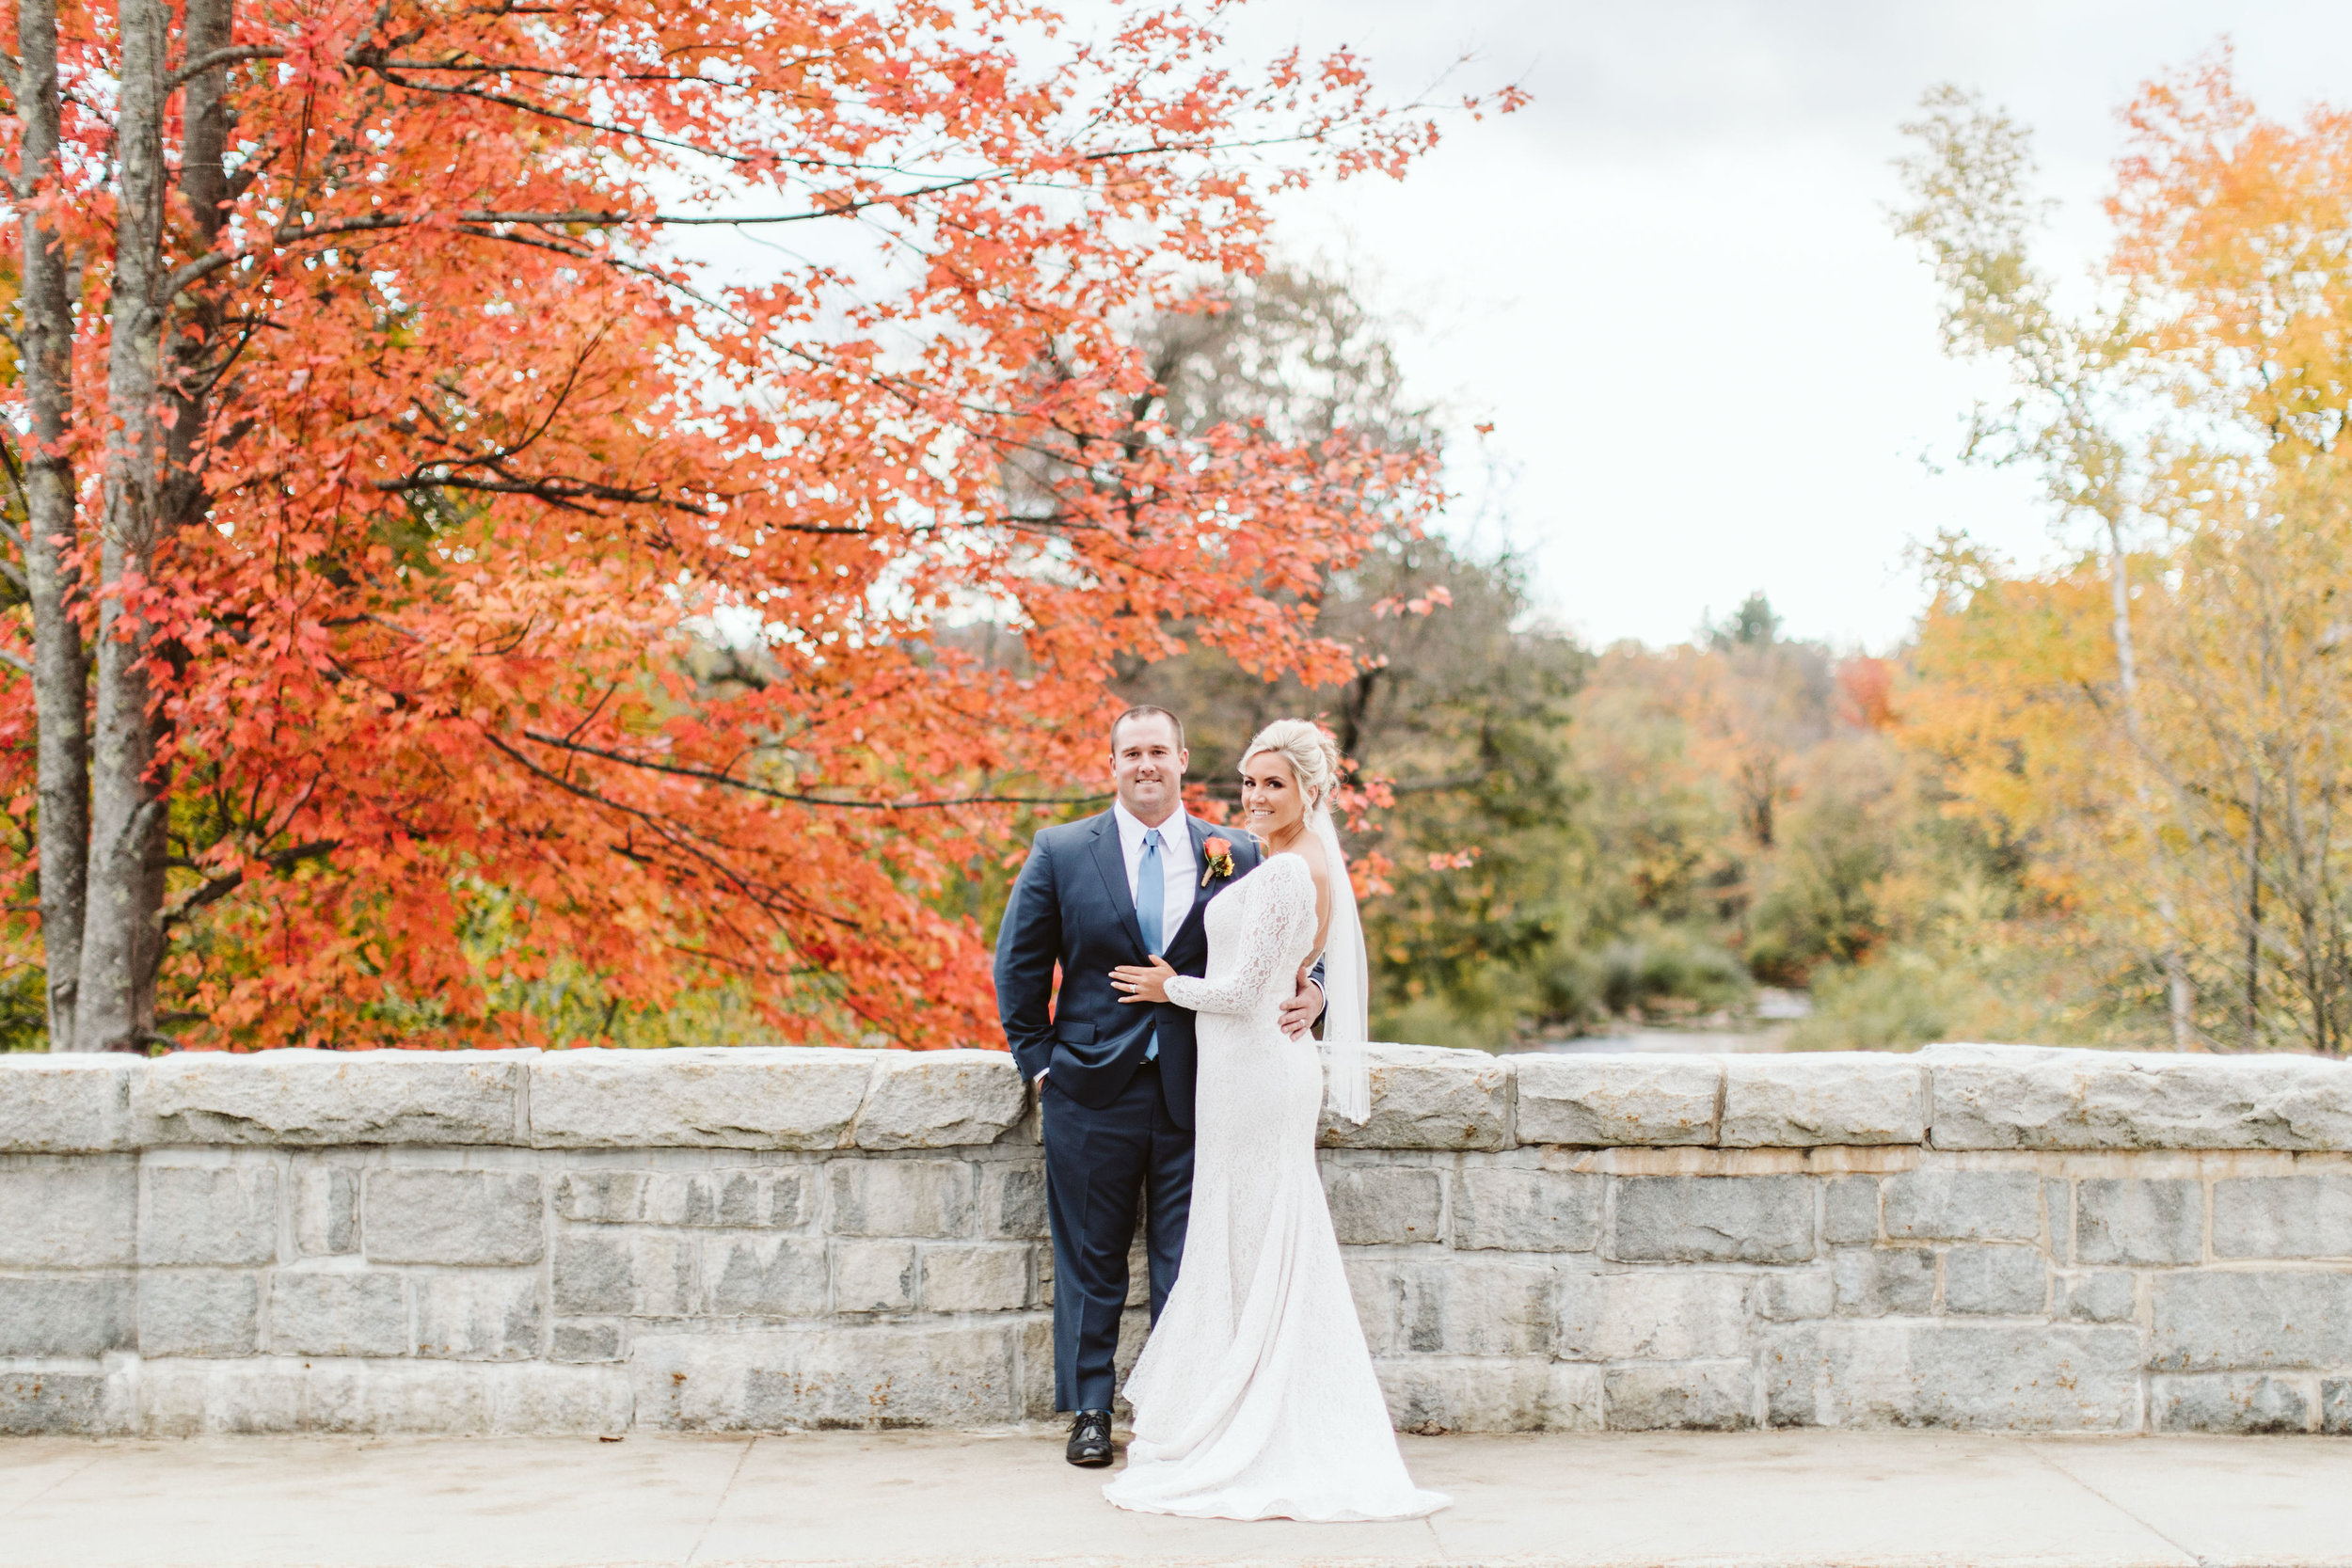 Shannon + Mitch taking advantage of the foliage during their autumn wedding at The Wentworth (Jackson, NH)